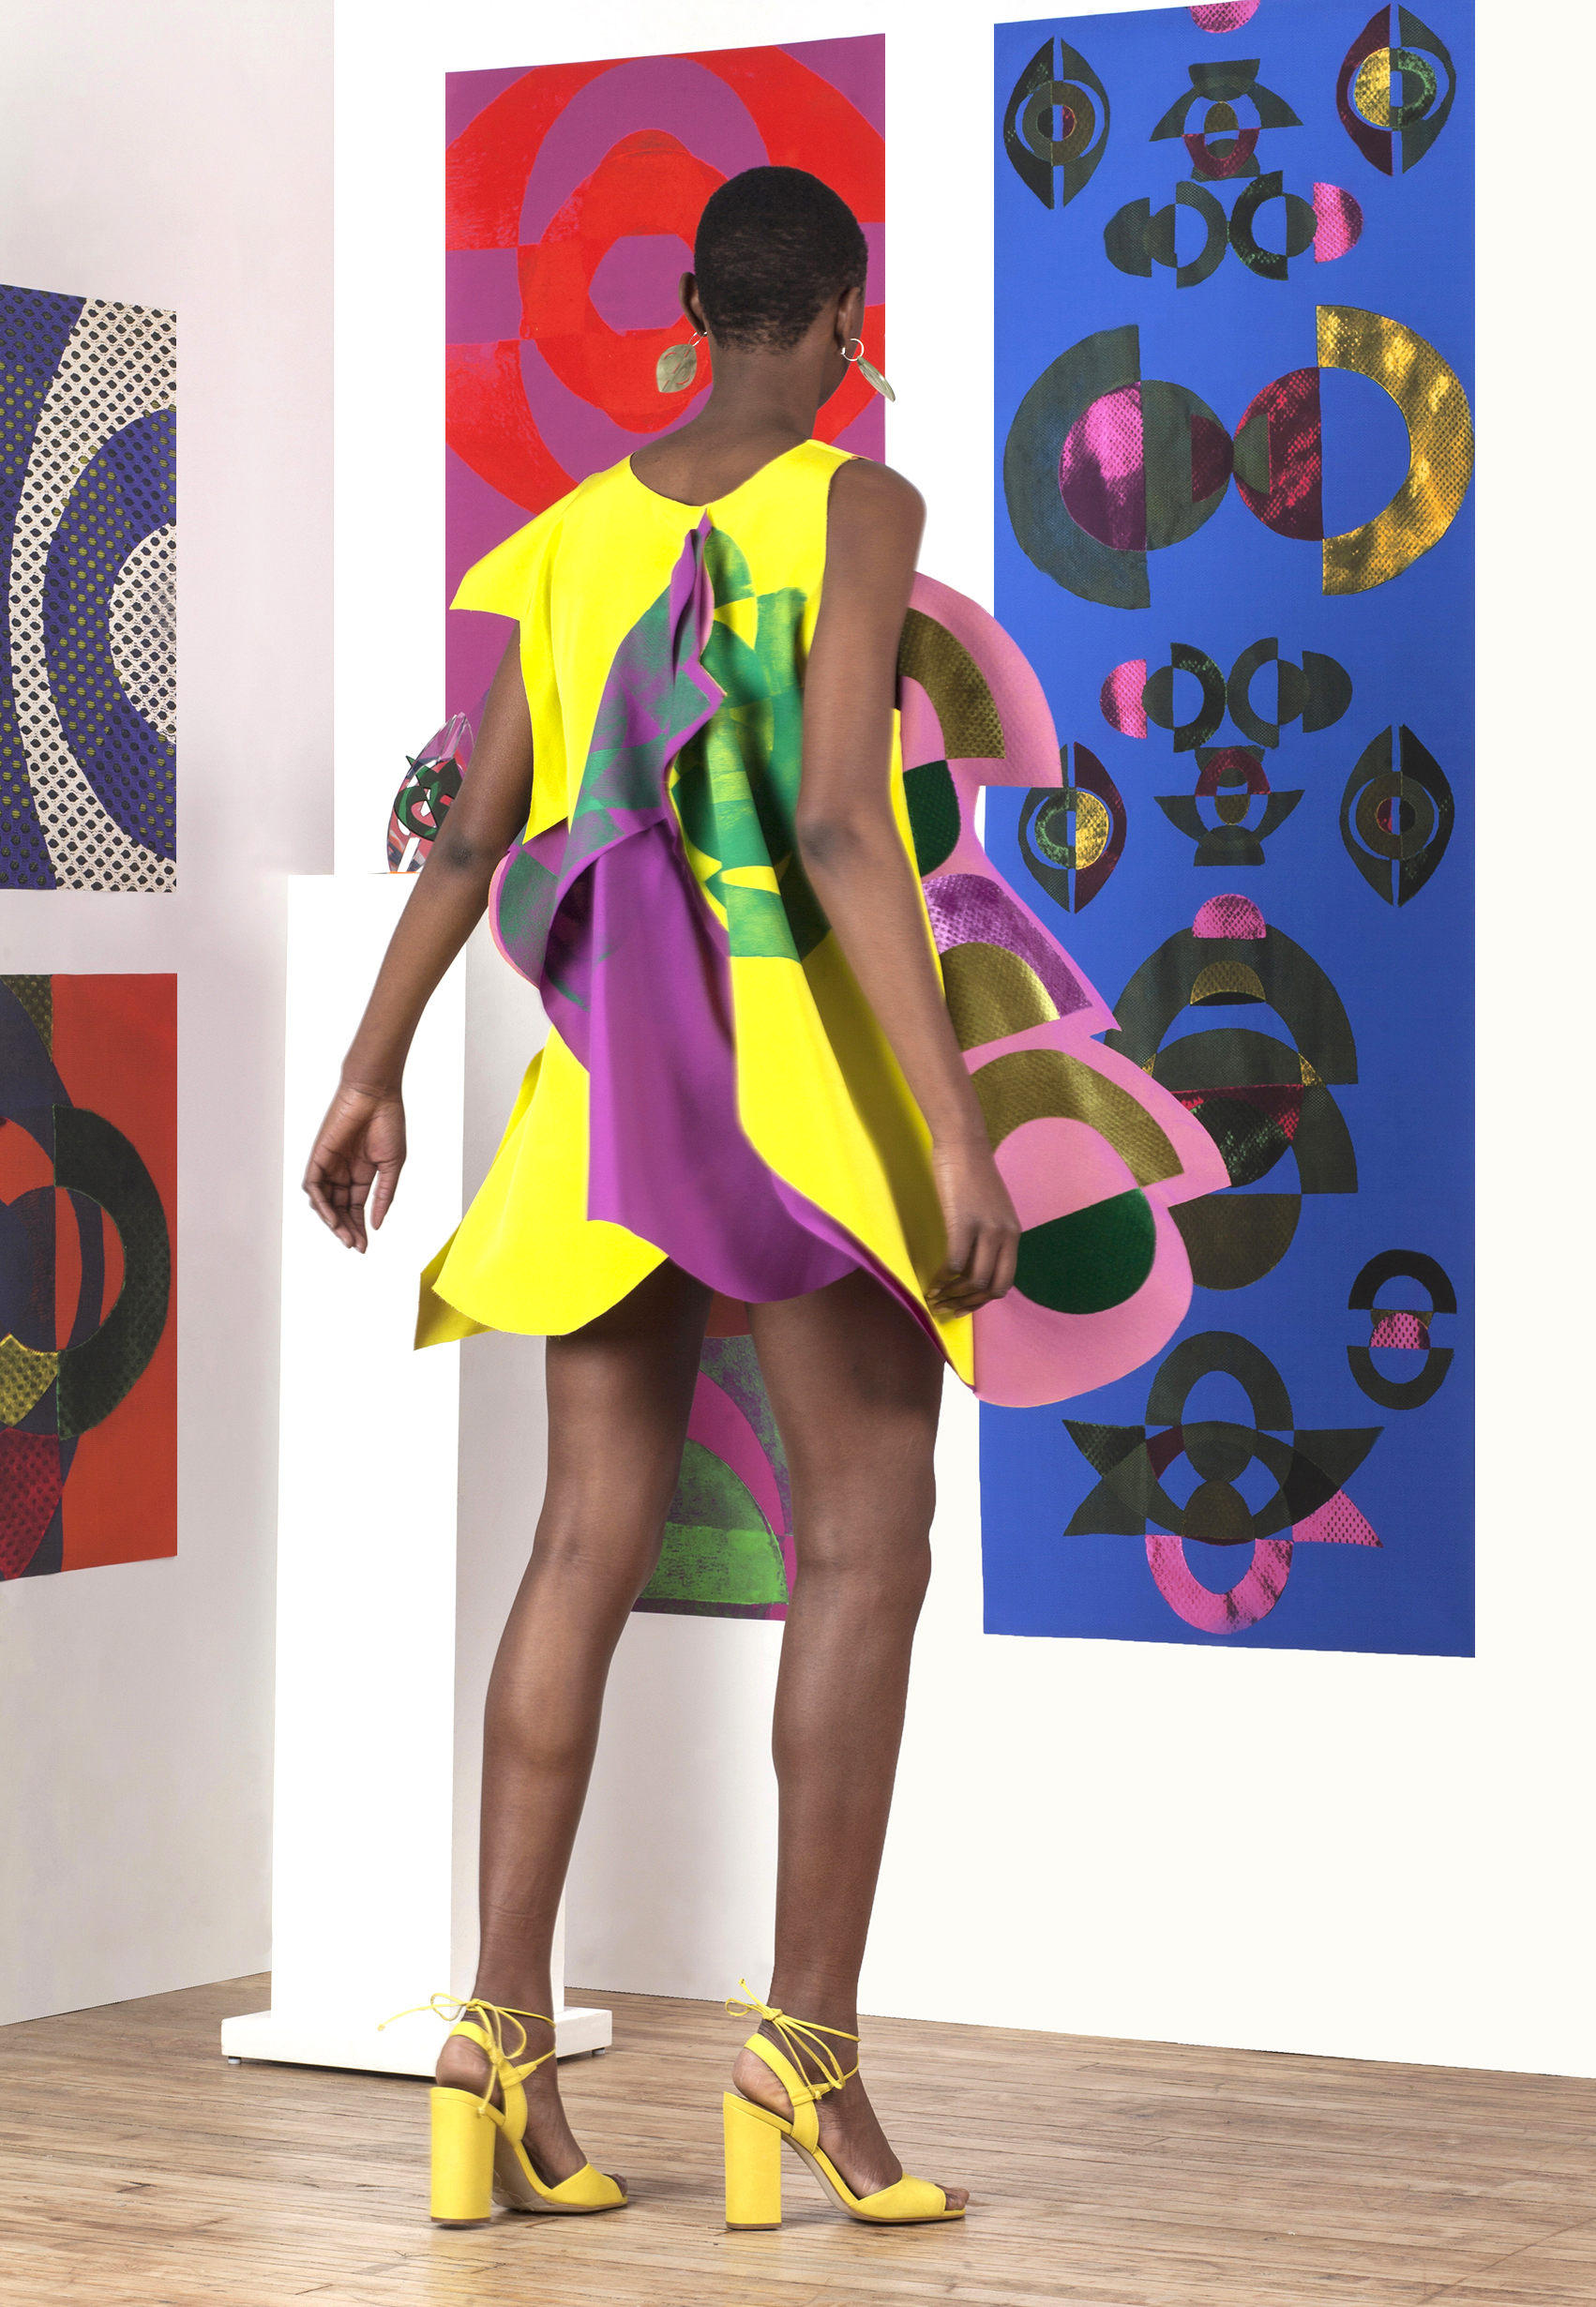 Block Printed and Velvet Appliqué 4 Ply Silk, Gorgette, and Nylon Dress with Laser Cut Earrings.